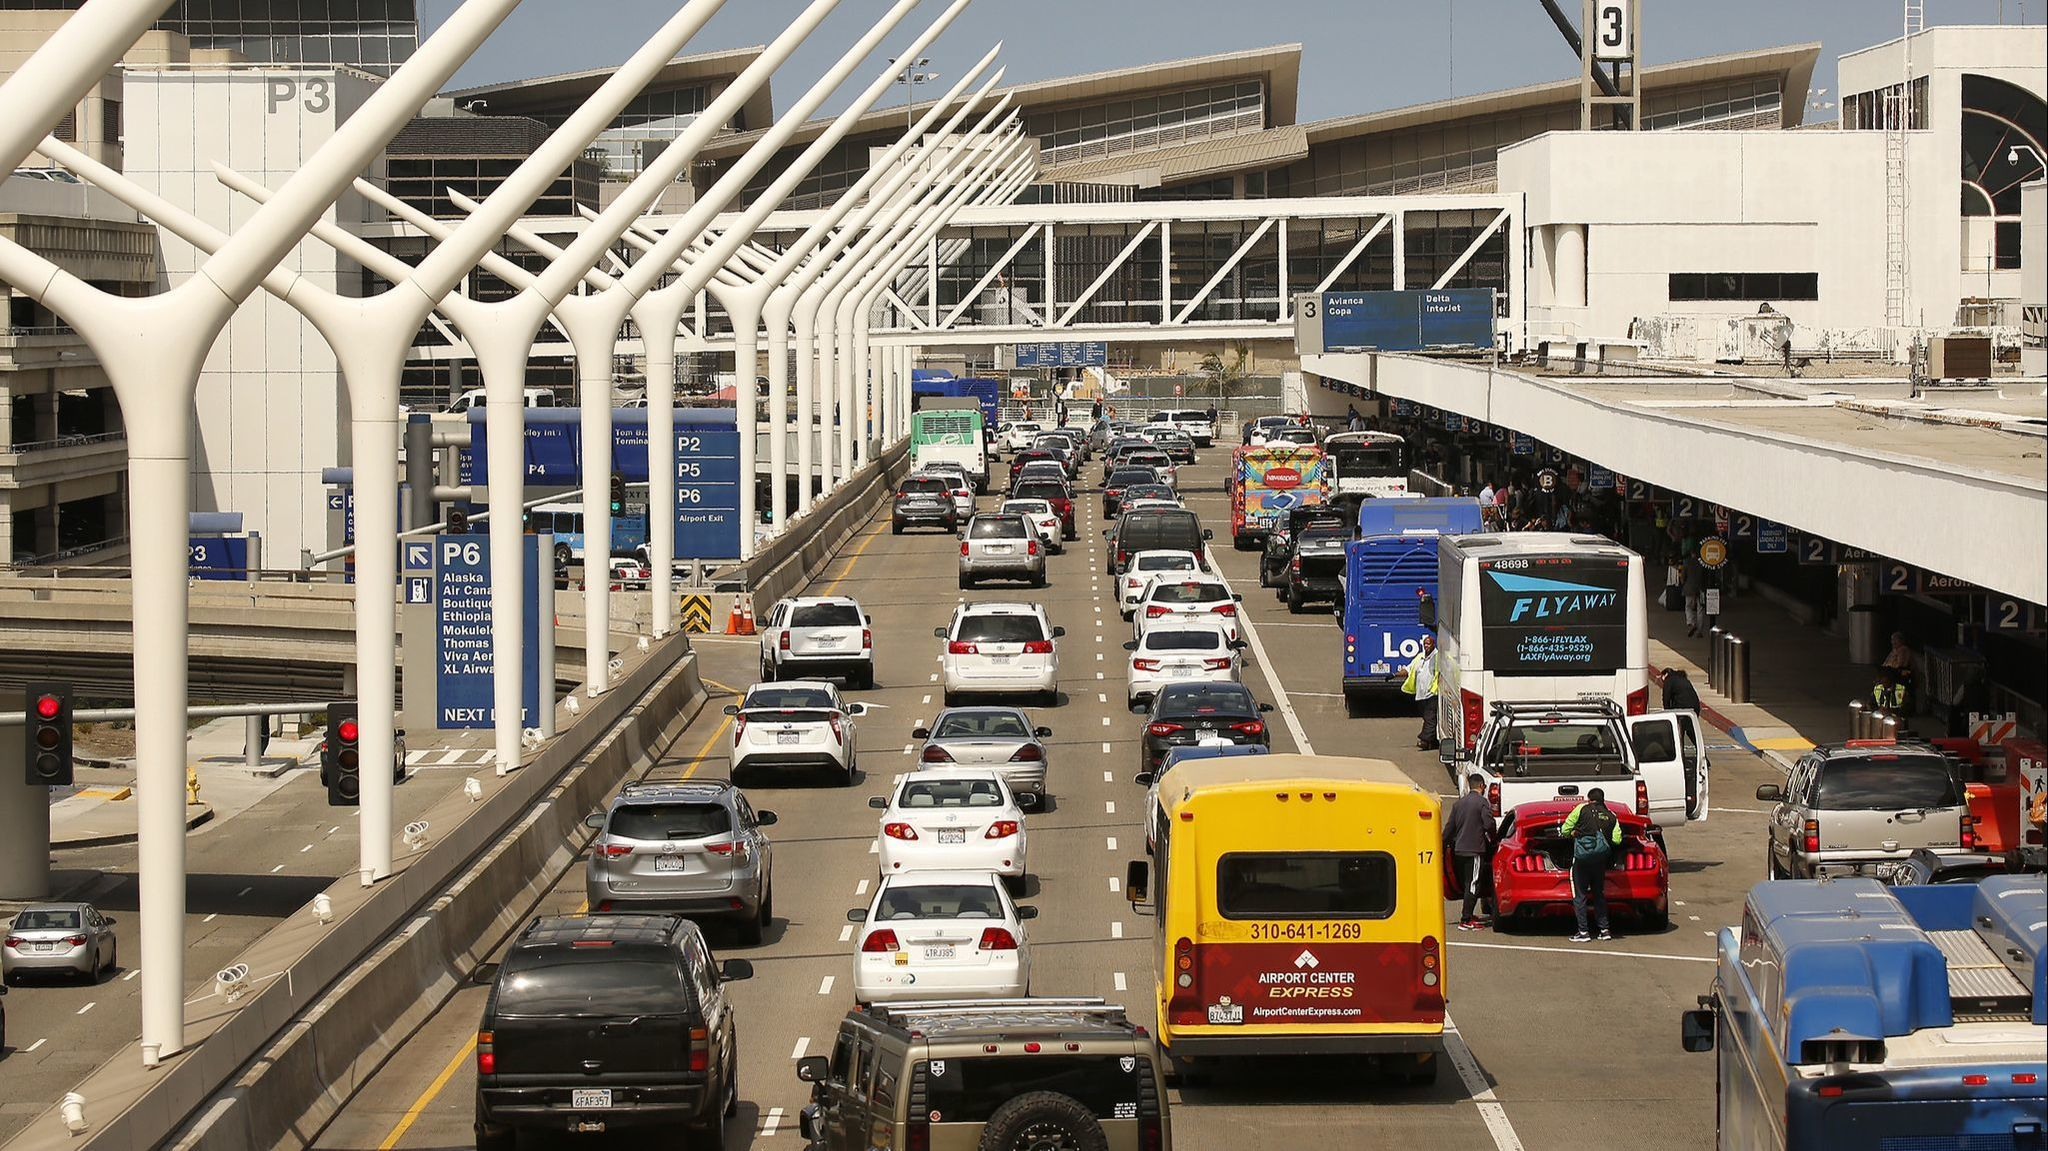 All the LAX parking lots are full and your flight is in an hour. Here's what to do